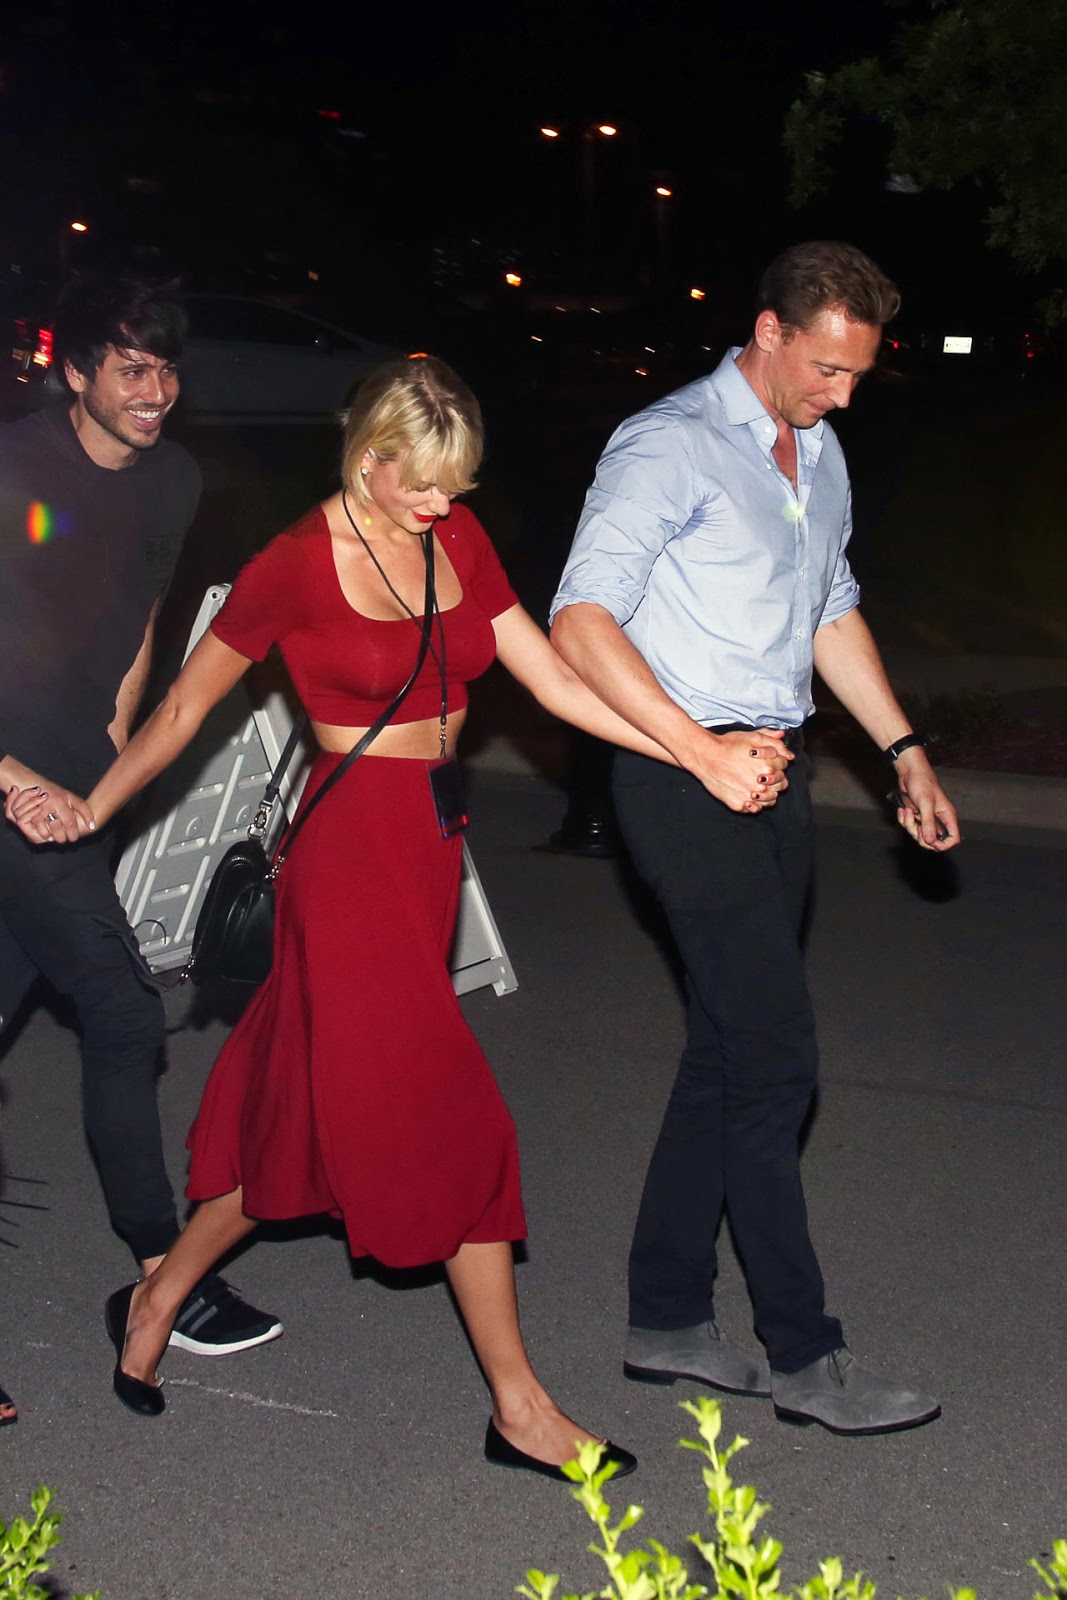 Celebs Today Taylor Swift With Tom Hiddleston At Selena Gomez Concert In Nashville June 22 2016